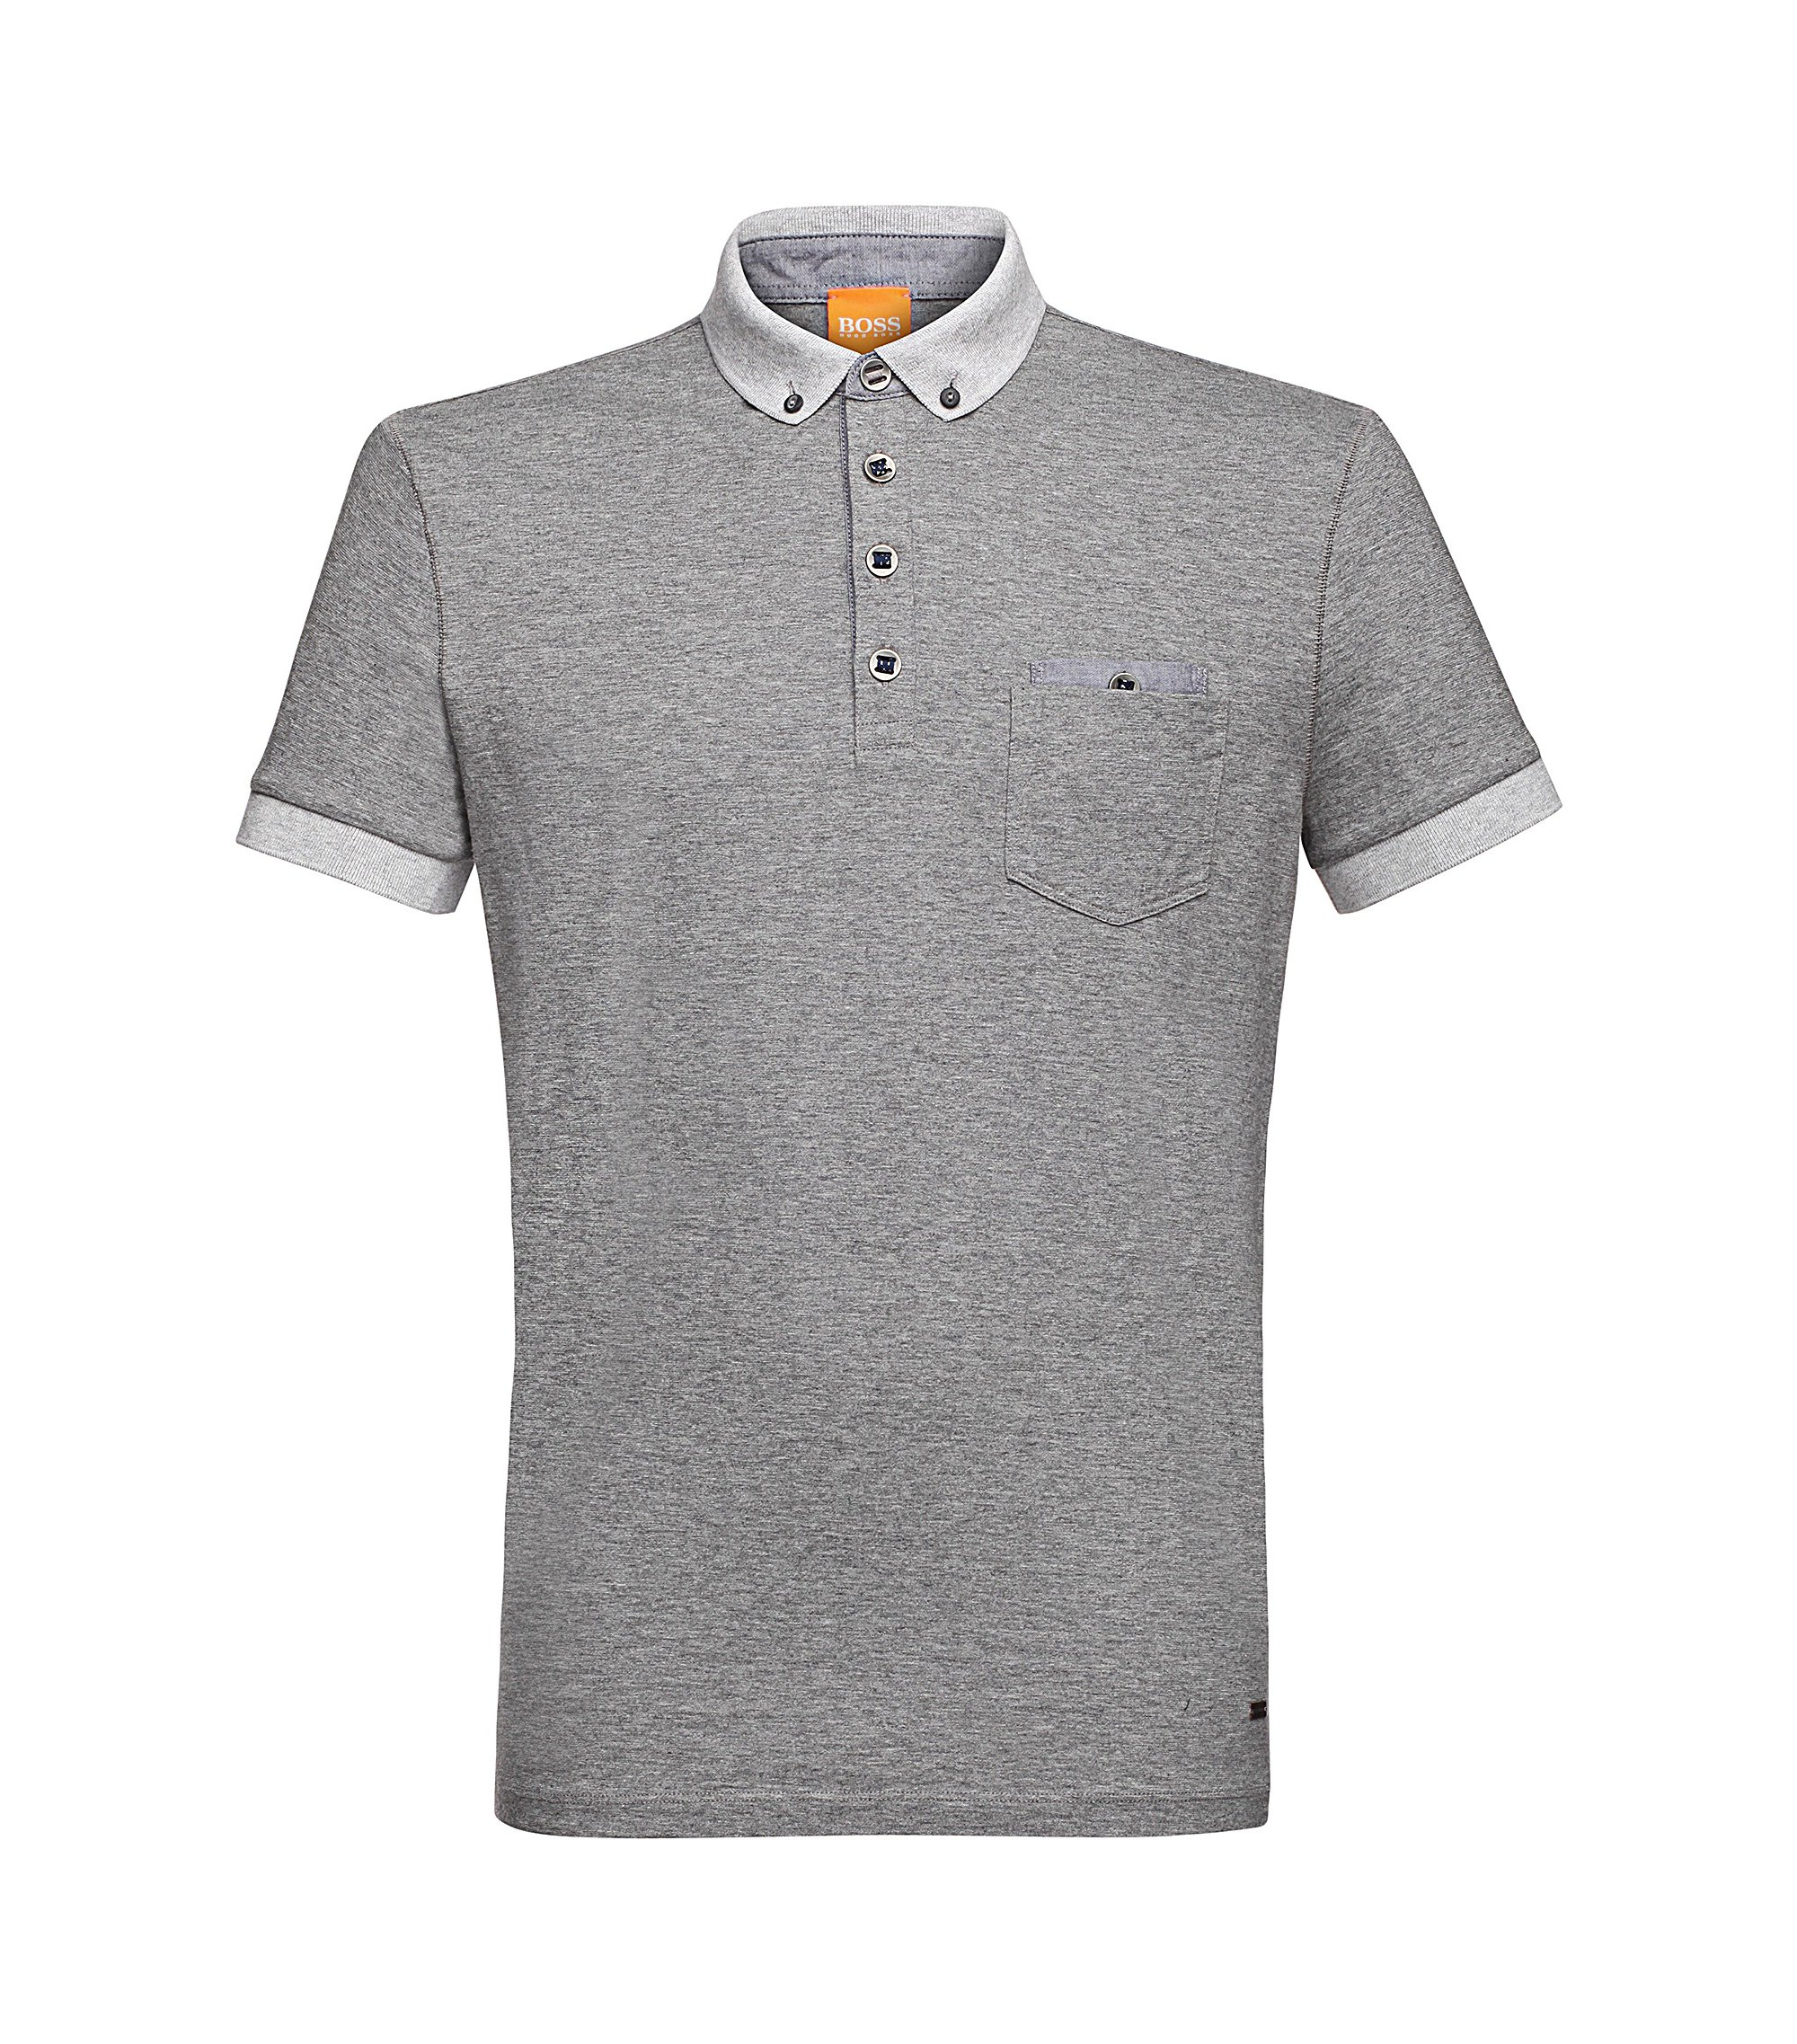 Yarn-Dyed Cotton Jersey Polo   Patches, Light Grey